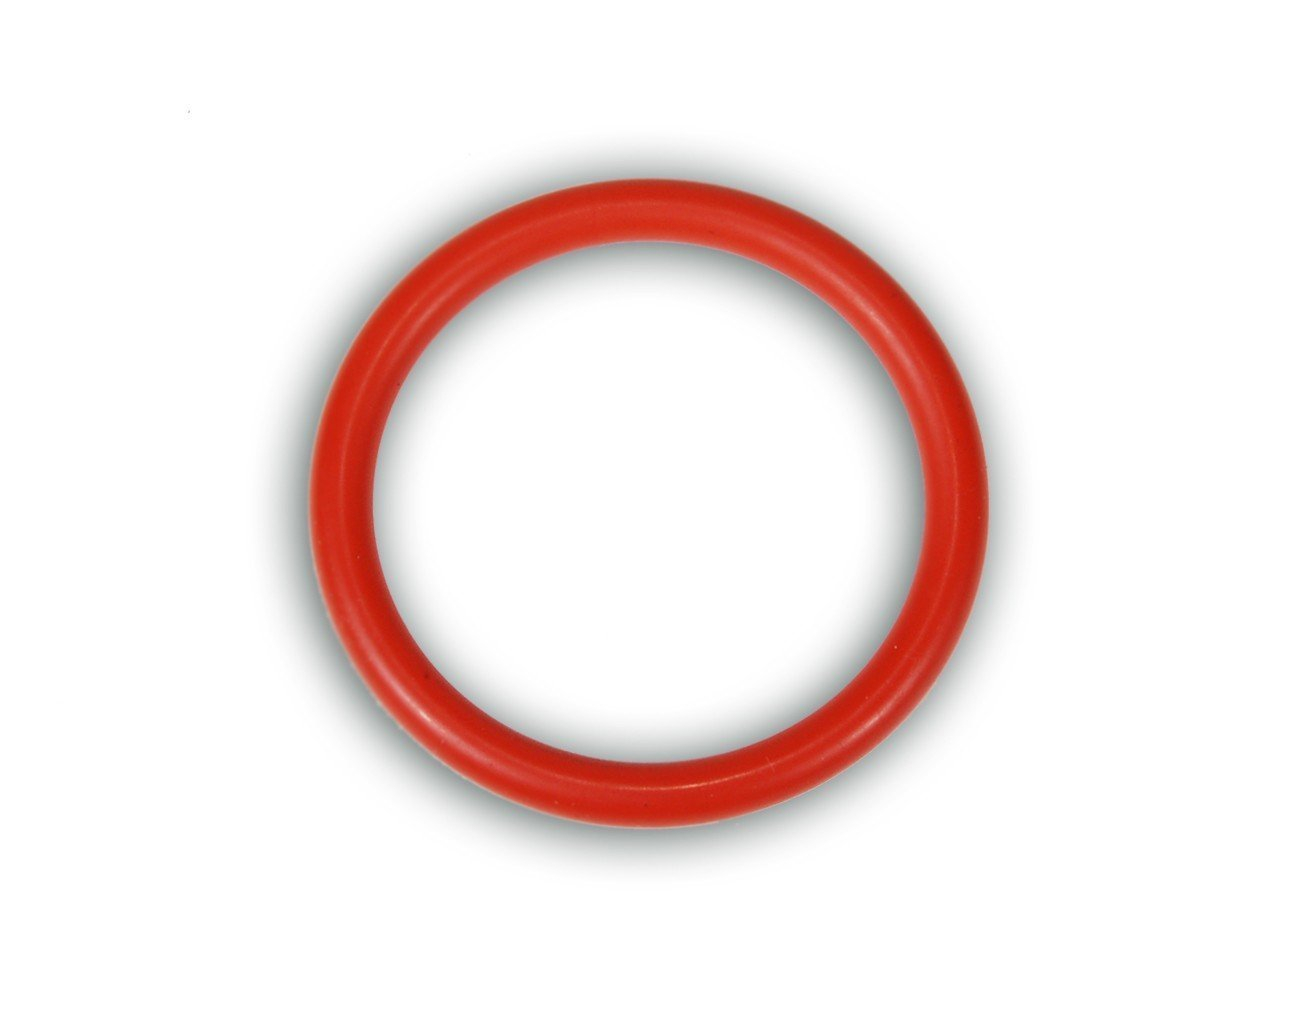 DeLonghi Generator Gasket Orange 5332149100